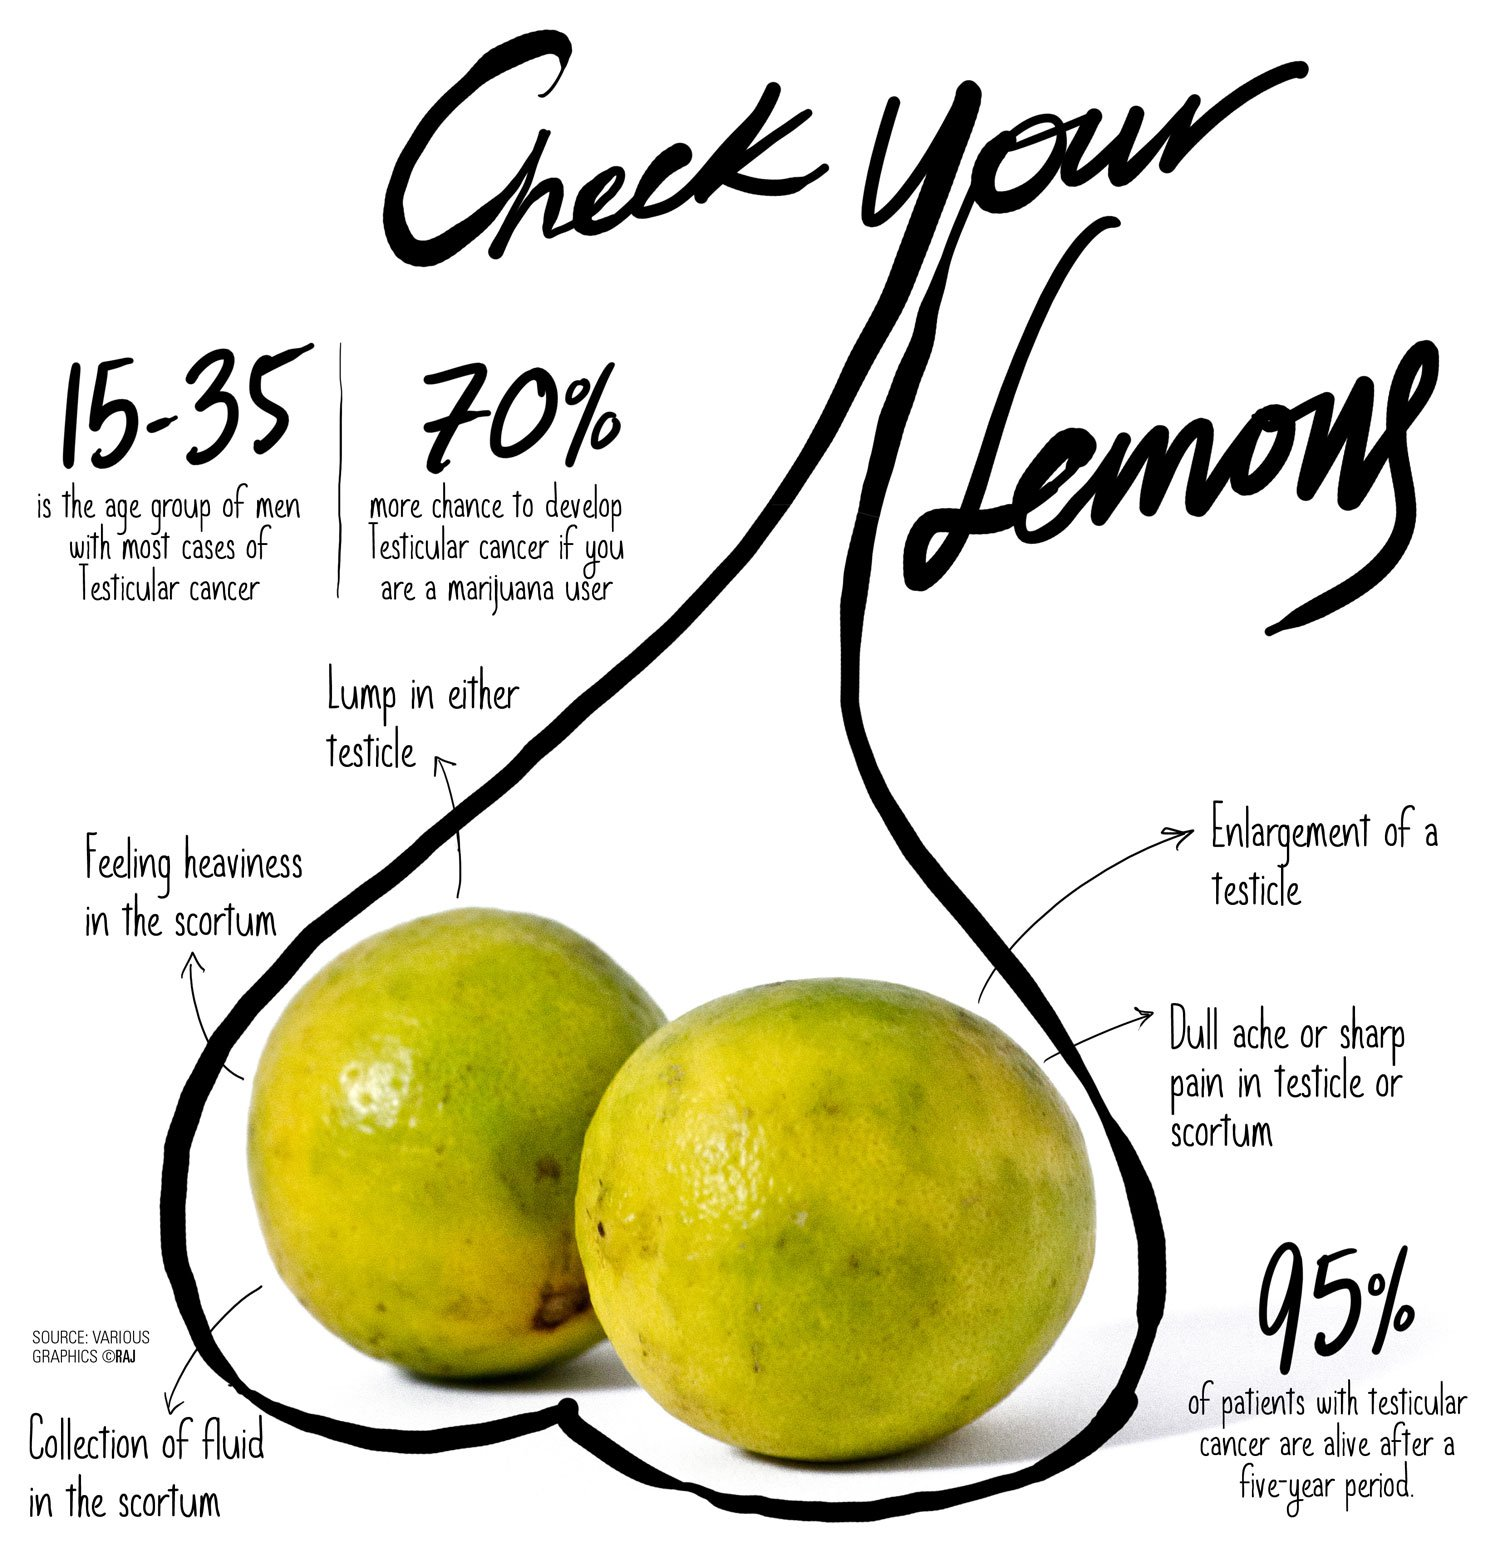 Check your lemons!